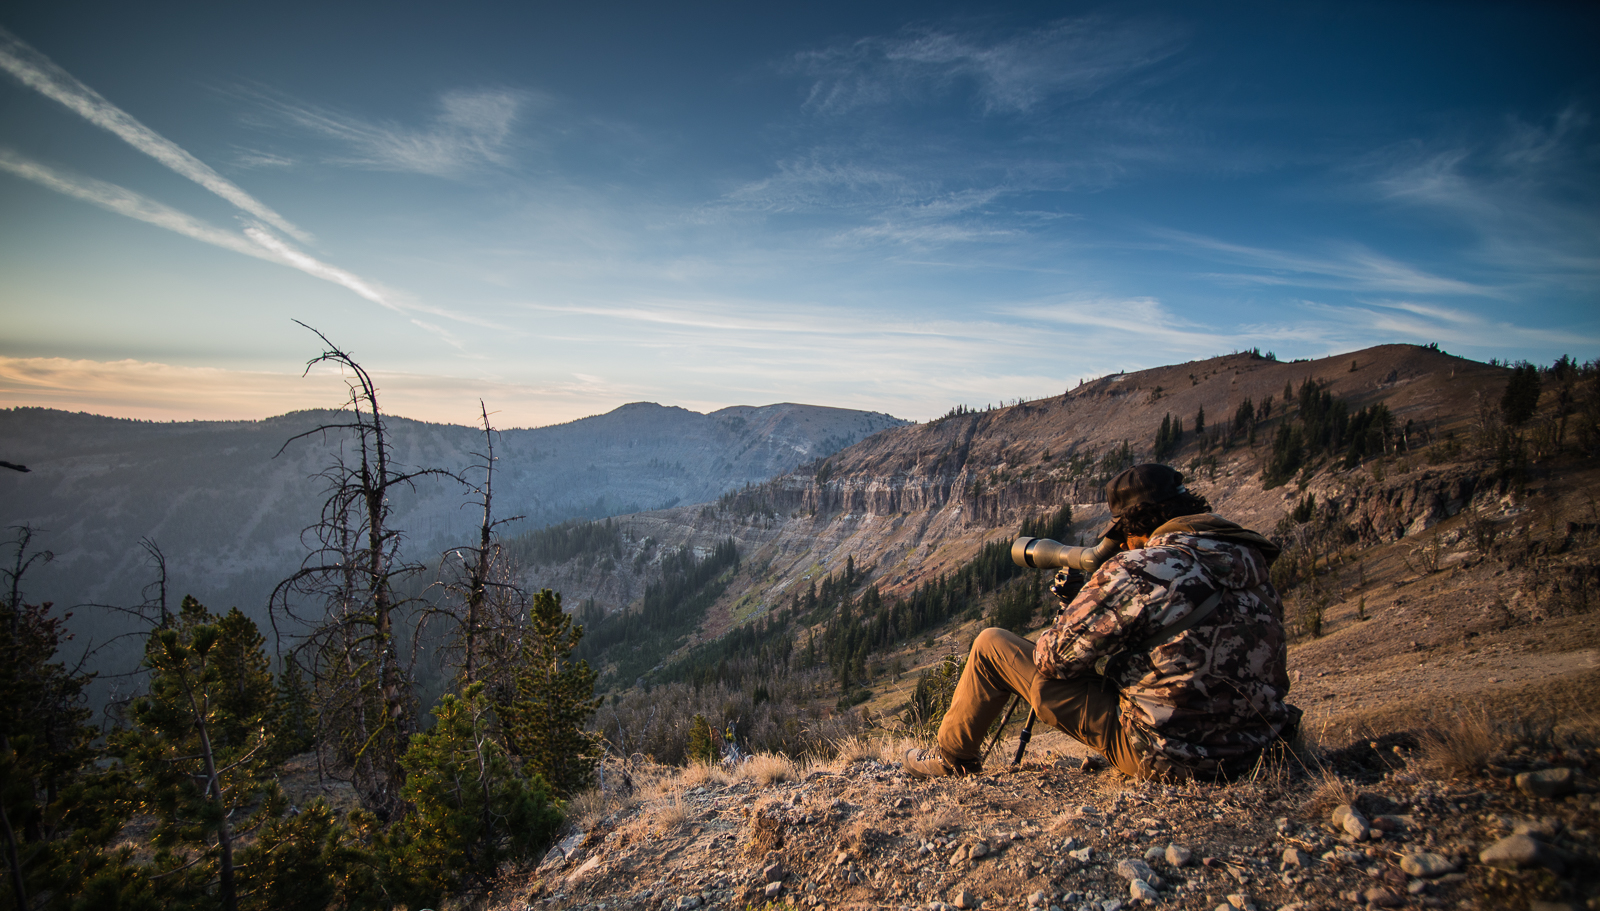 Scouting for big horn sheep deep in the gallatin range, Montana.  photo: yogesh simpson